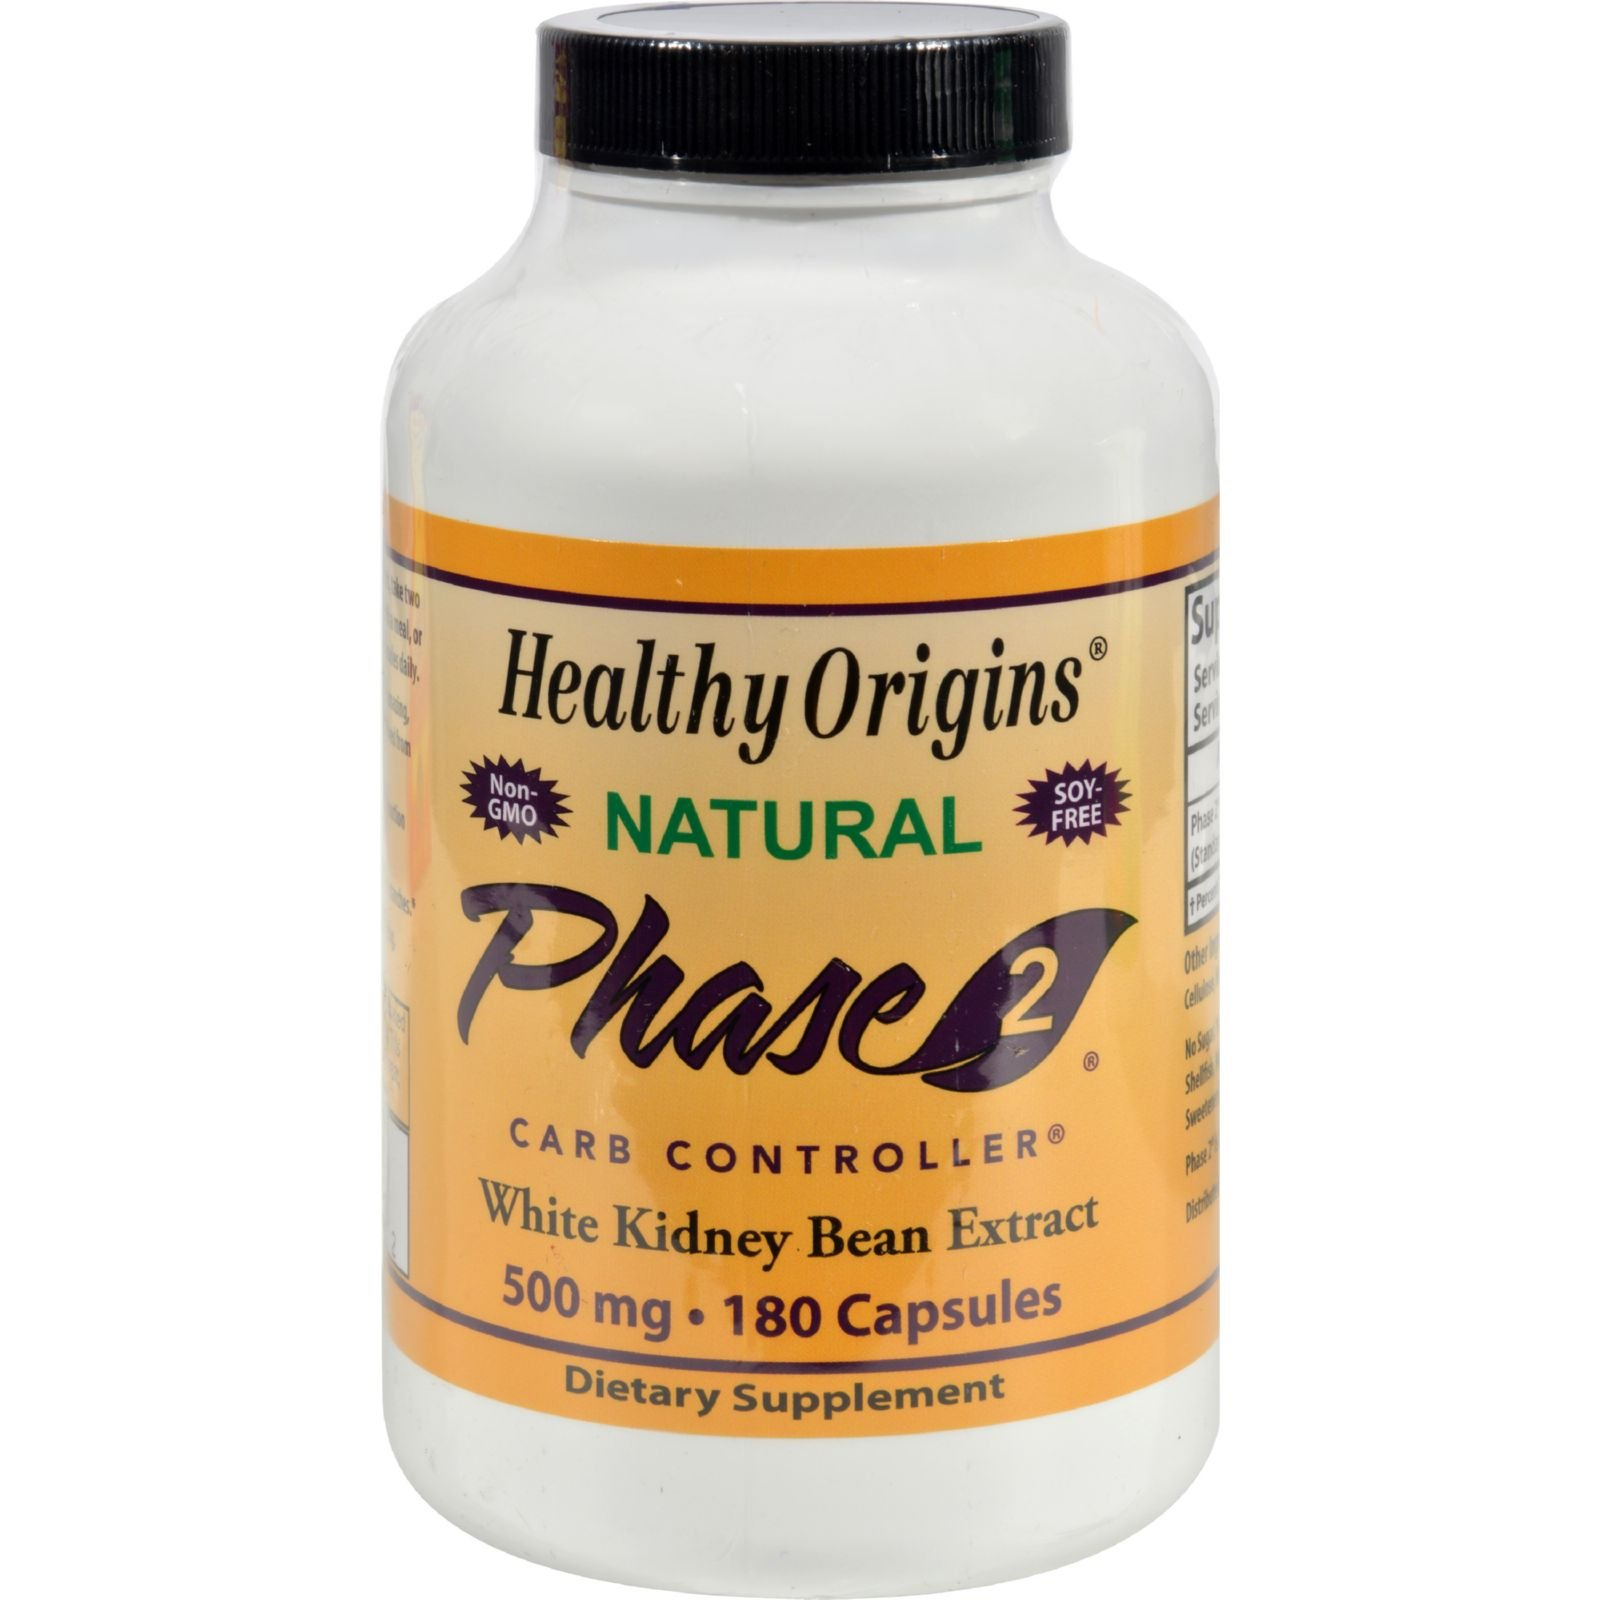 Healthy Origins Phase 2 Carb Controller - 500 mg - 180 Capsules (Pack of 2)